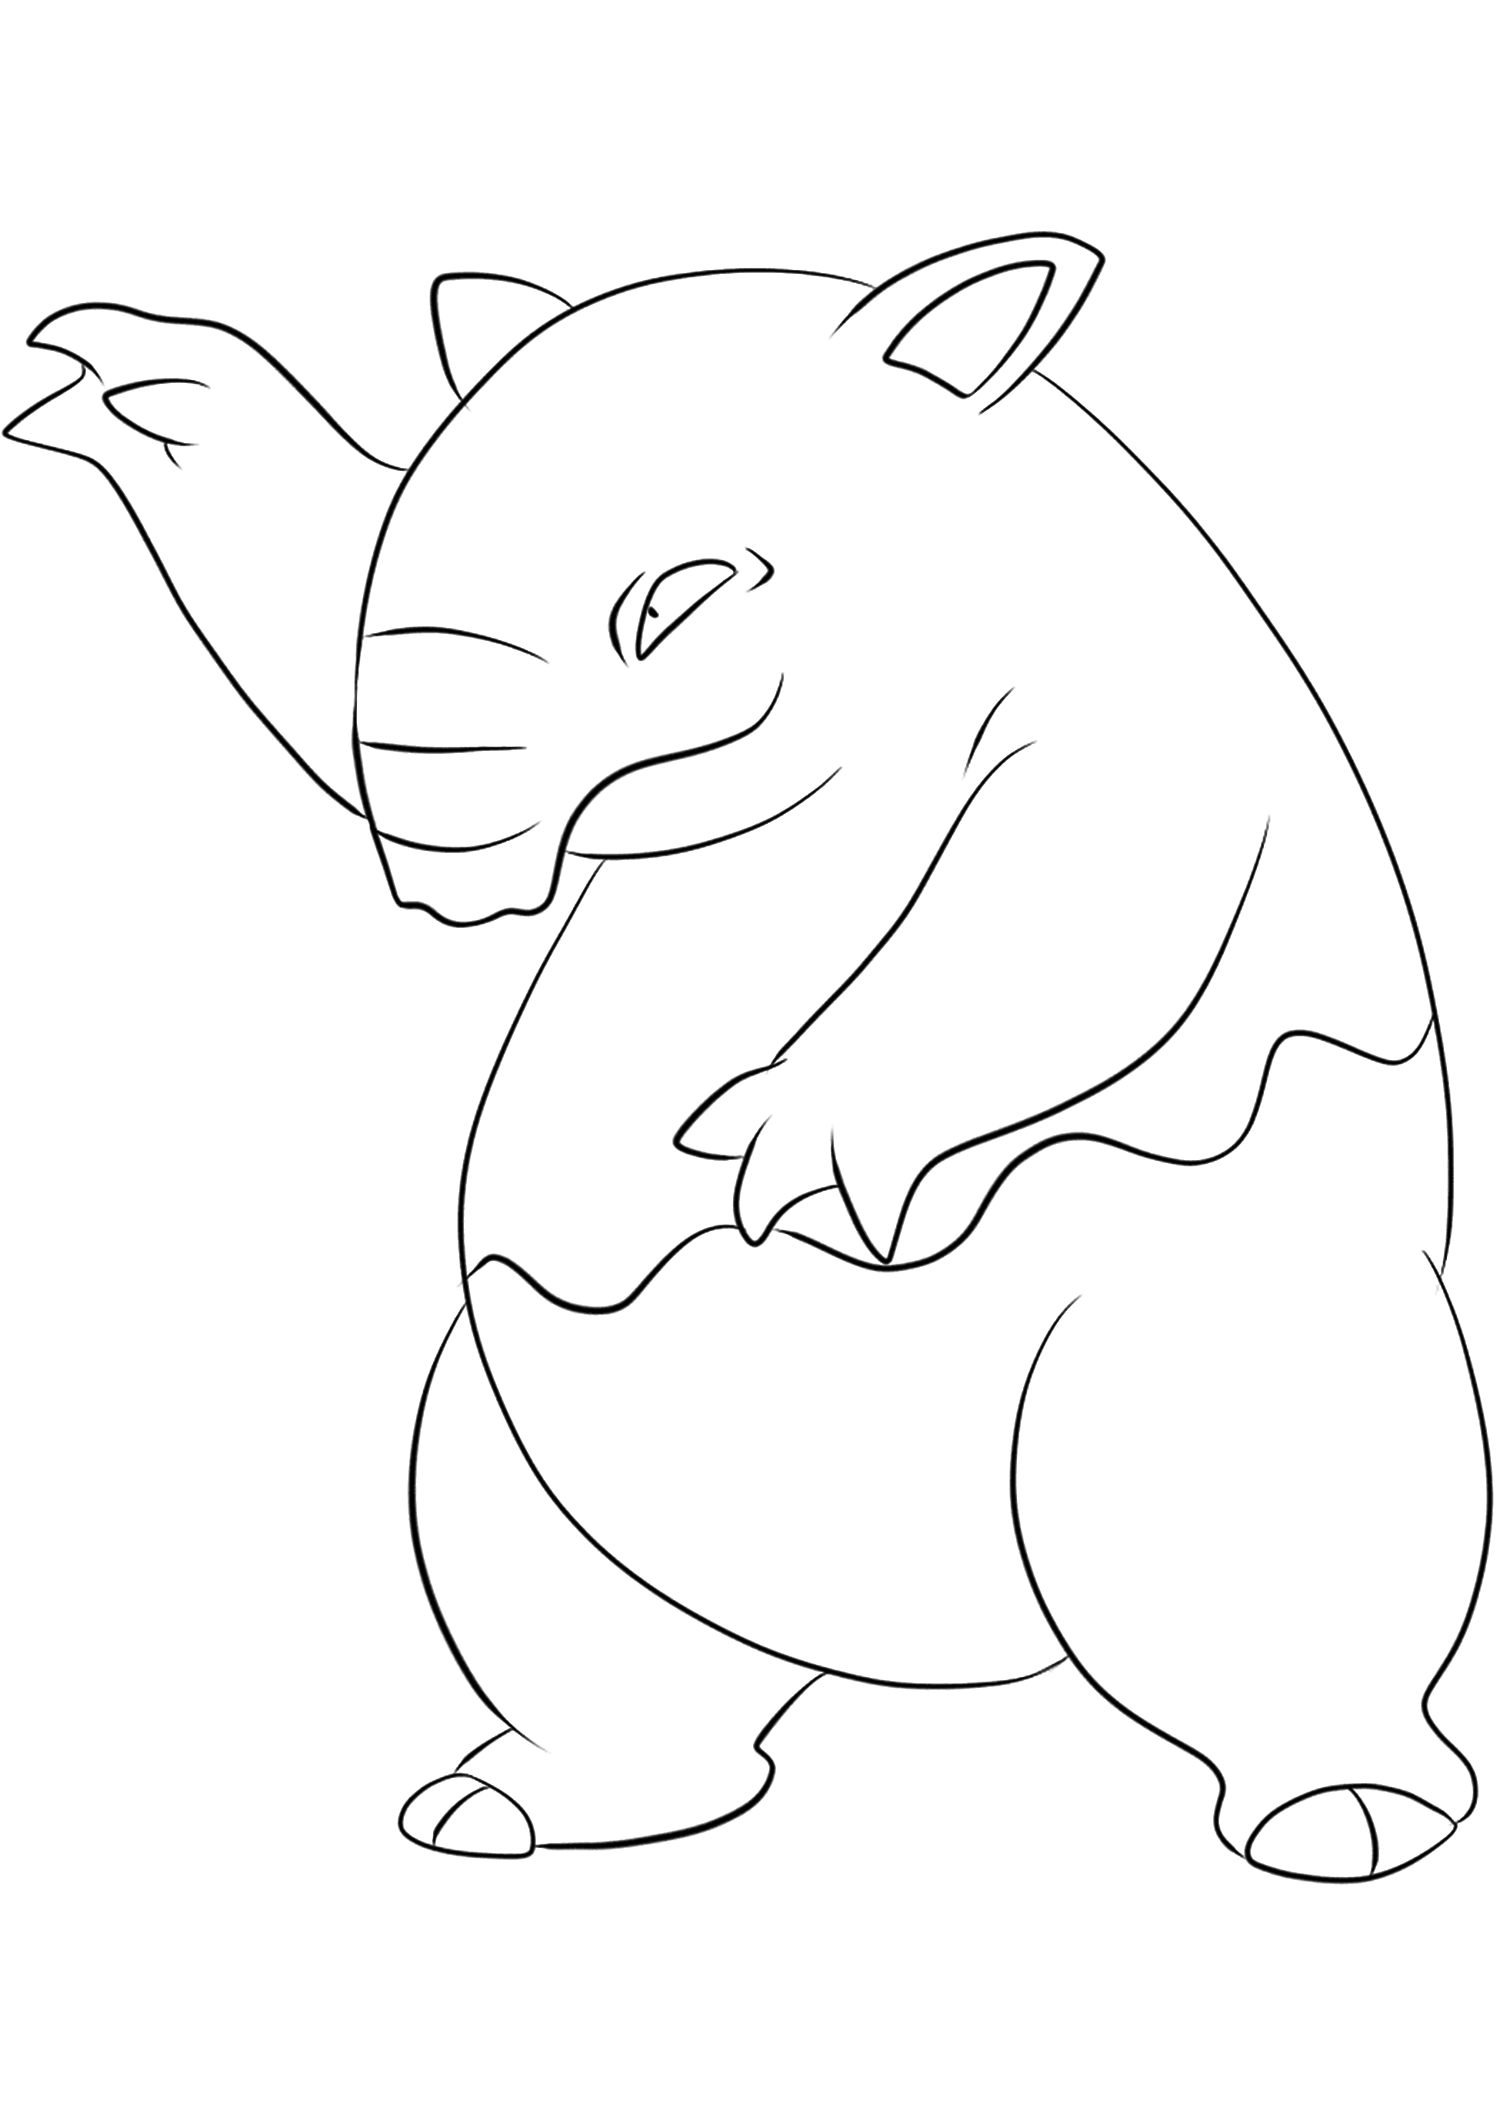 Drowzee (No.96)Drowzee Coloring page, Generation I Pokemon of type PsychicOriginal image credit: Pokemon linearts by Lilly Gerbil on Deviantart.Permission:  All rights reserved © Pokemon company and Ken Sugimori.